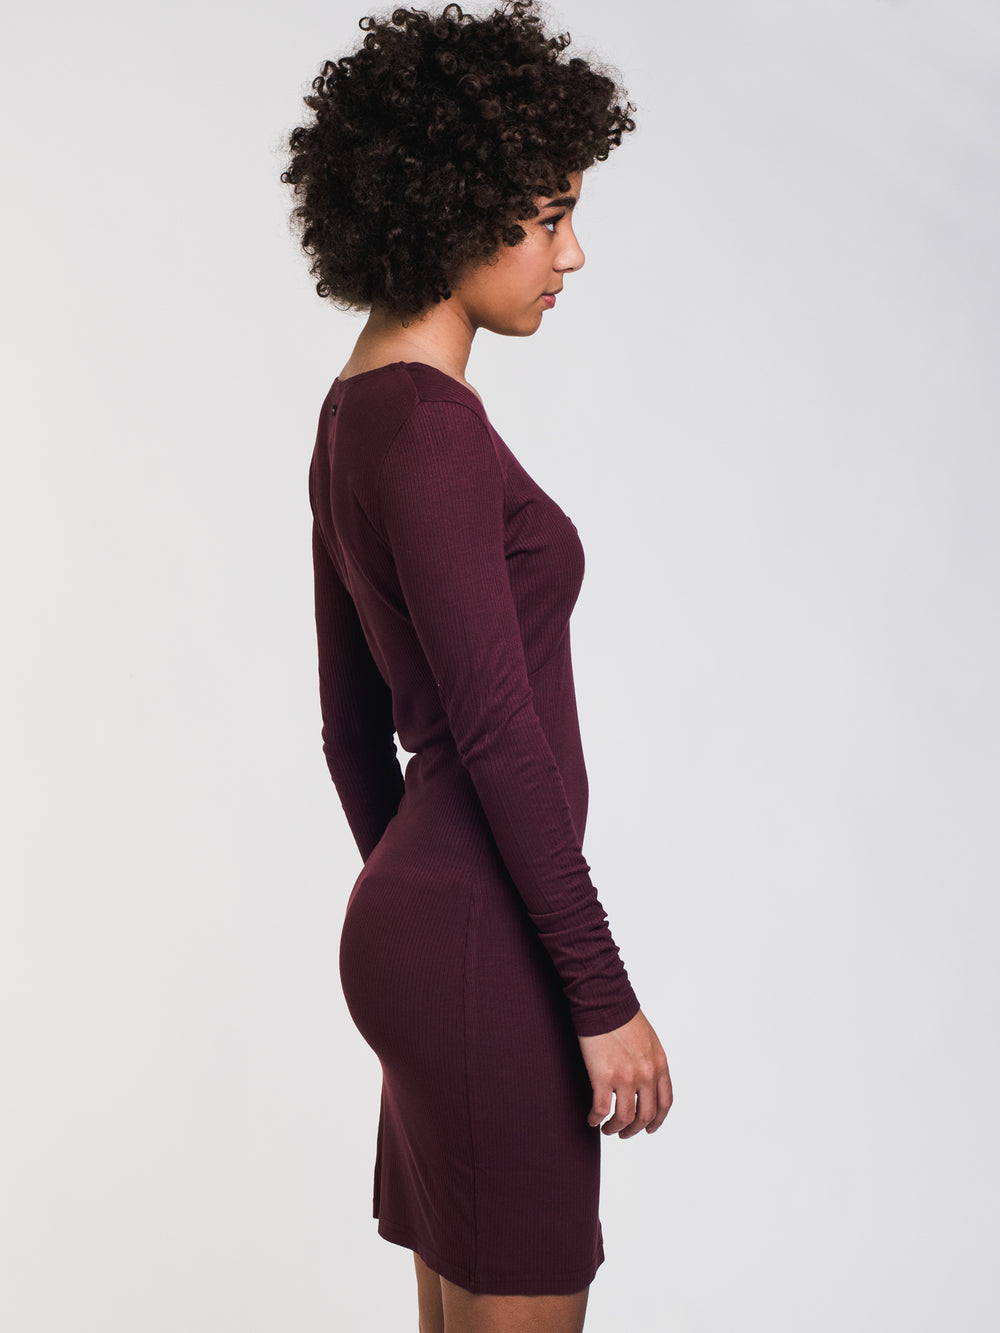 WOMENS KNOT UP DRESS - BURGUNDY - CLEARANCE